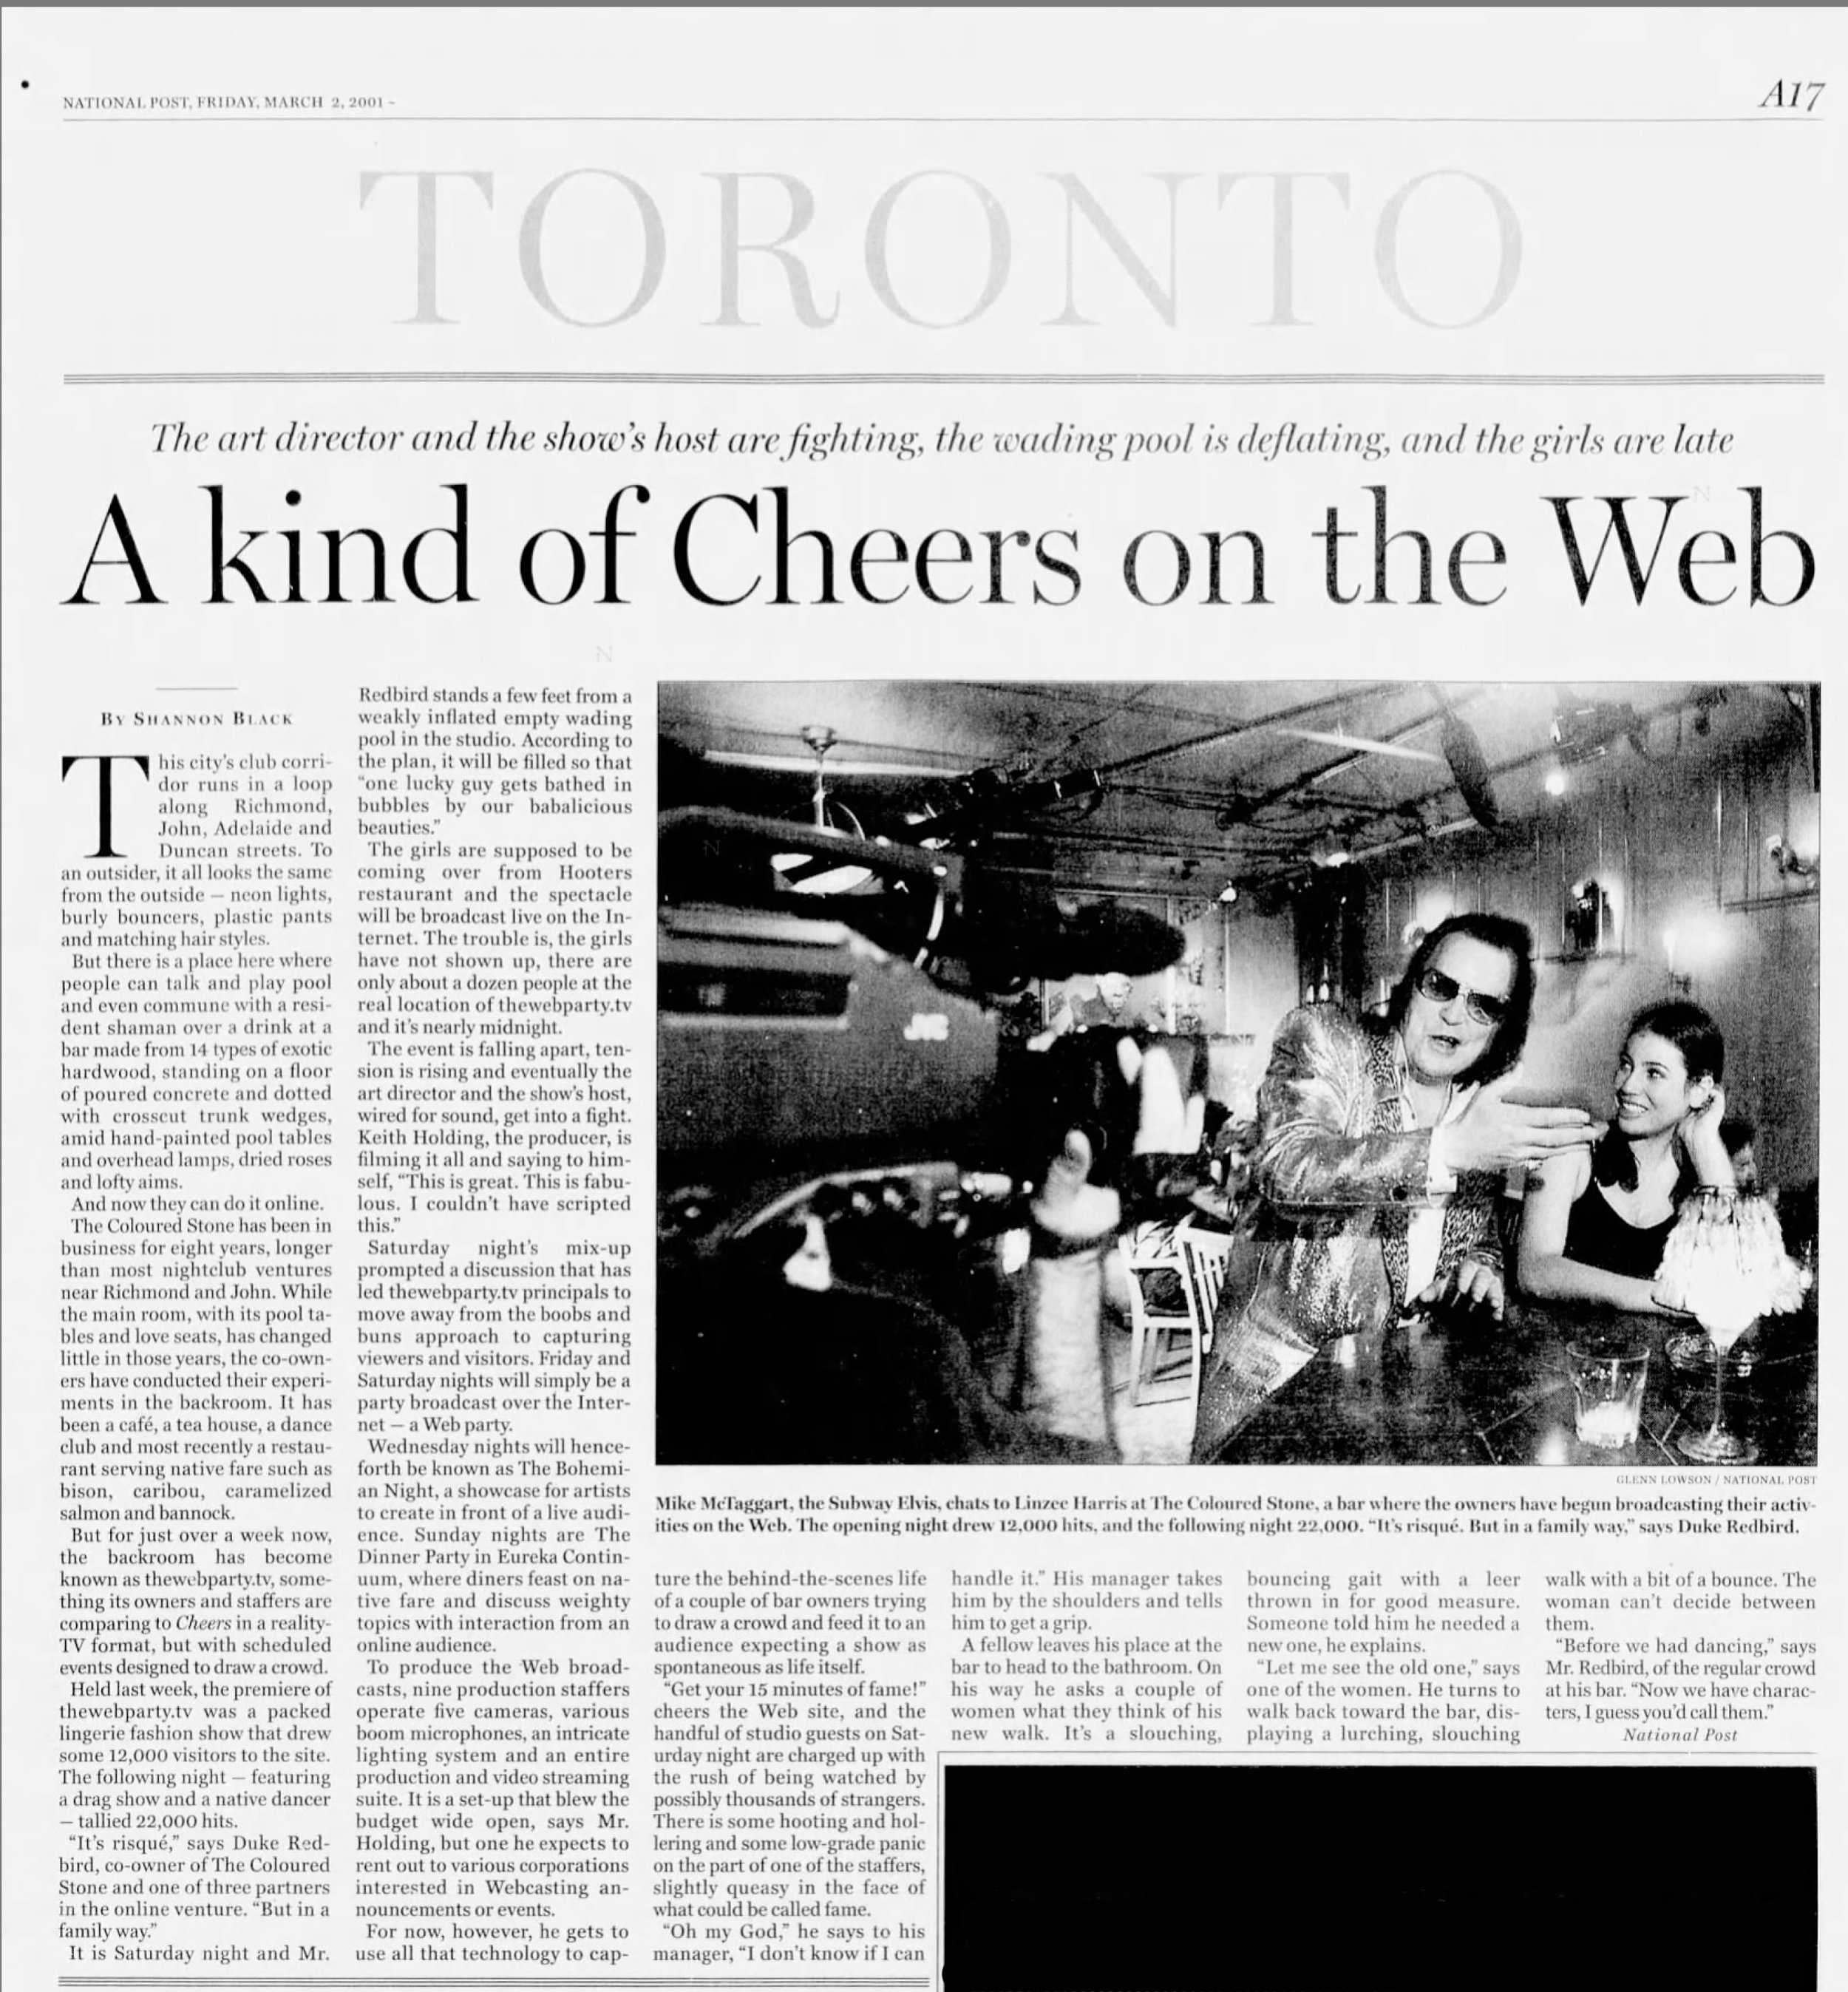 Coloured Stone article _A Kind of Cheers on the Web_ March 2 2001 National Post.jpg